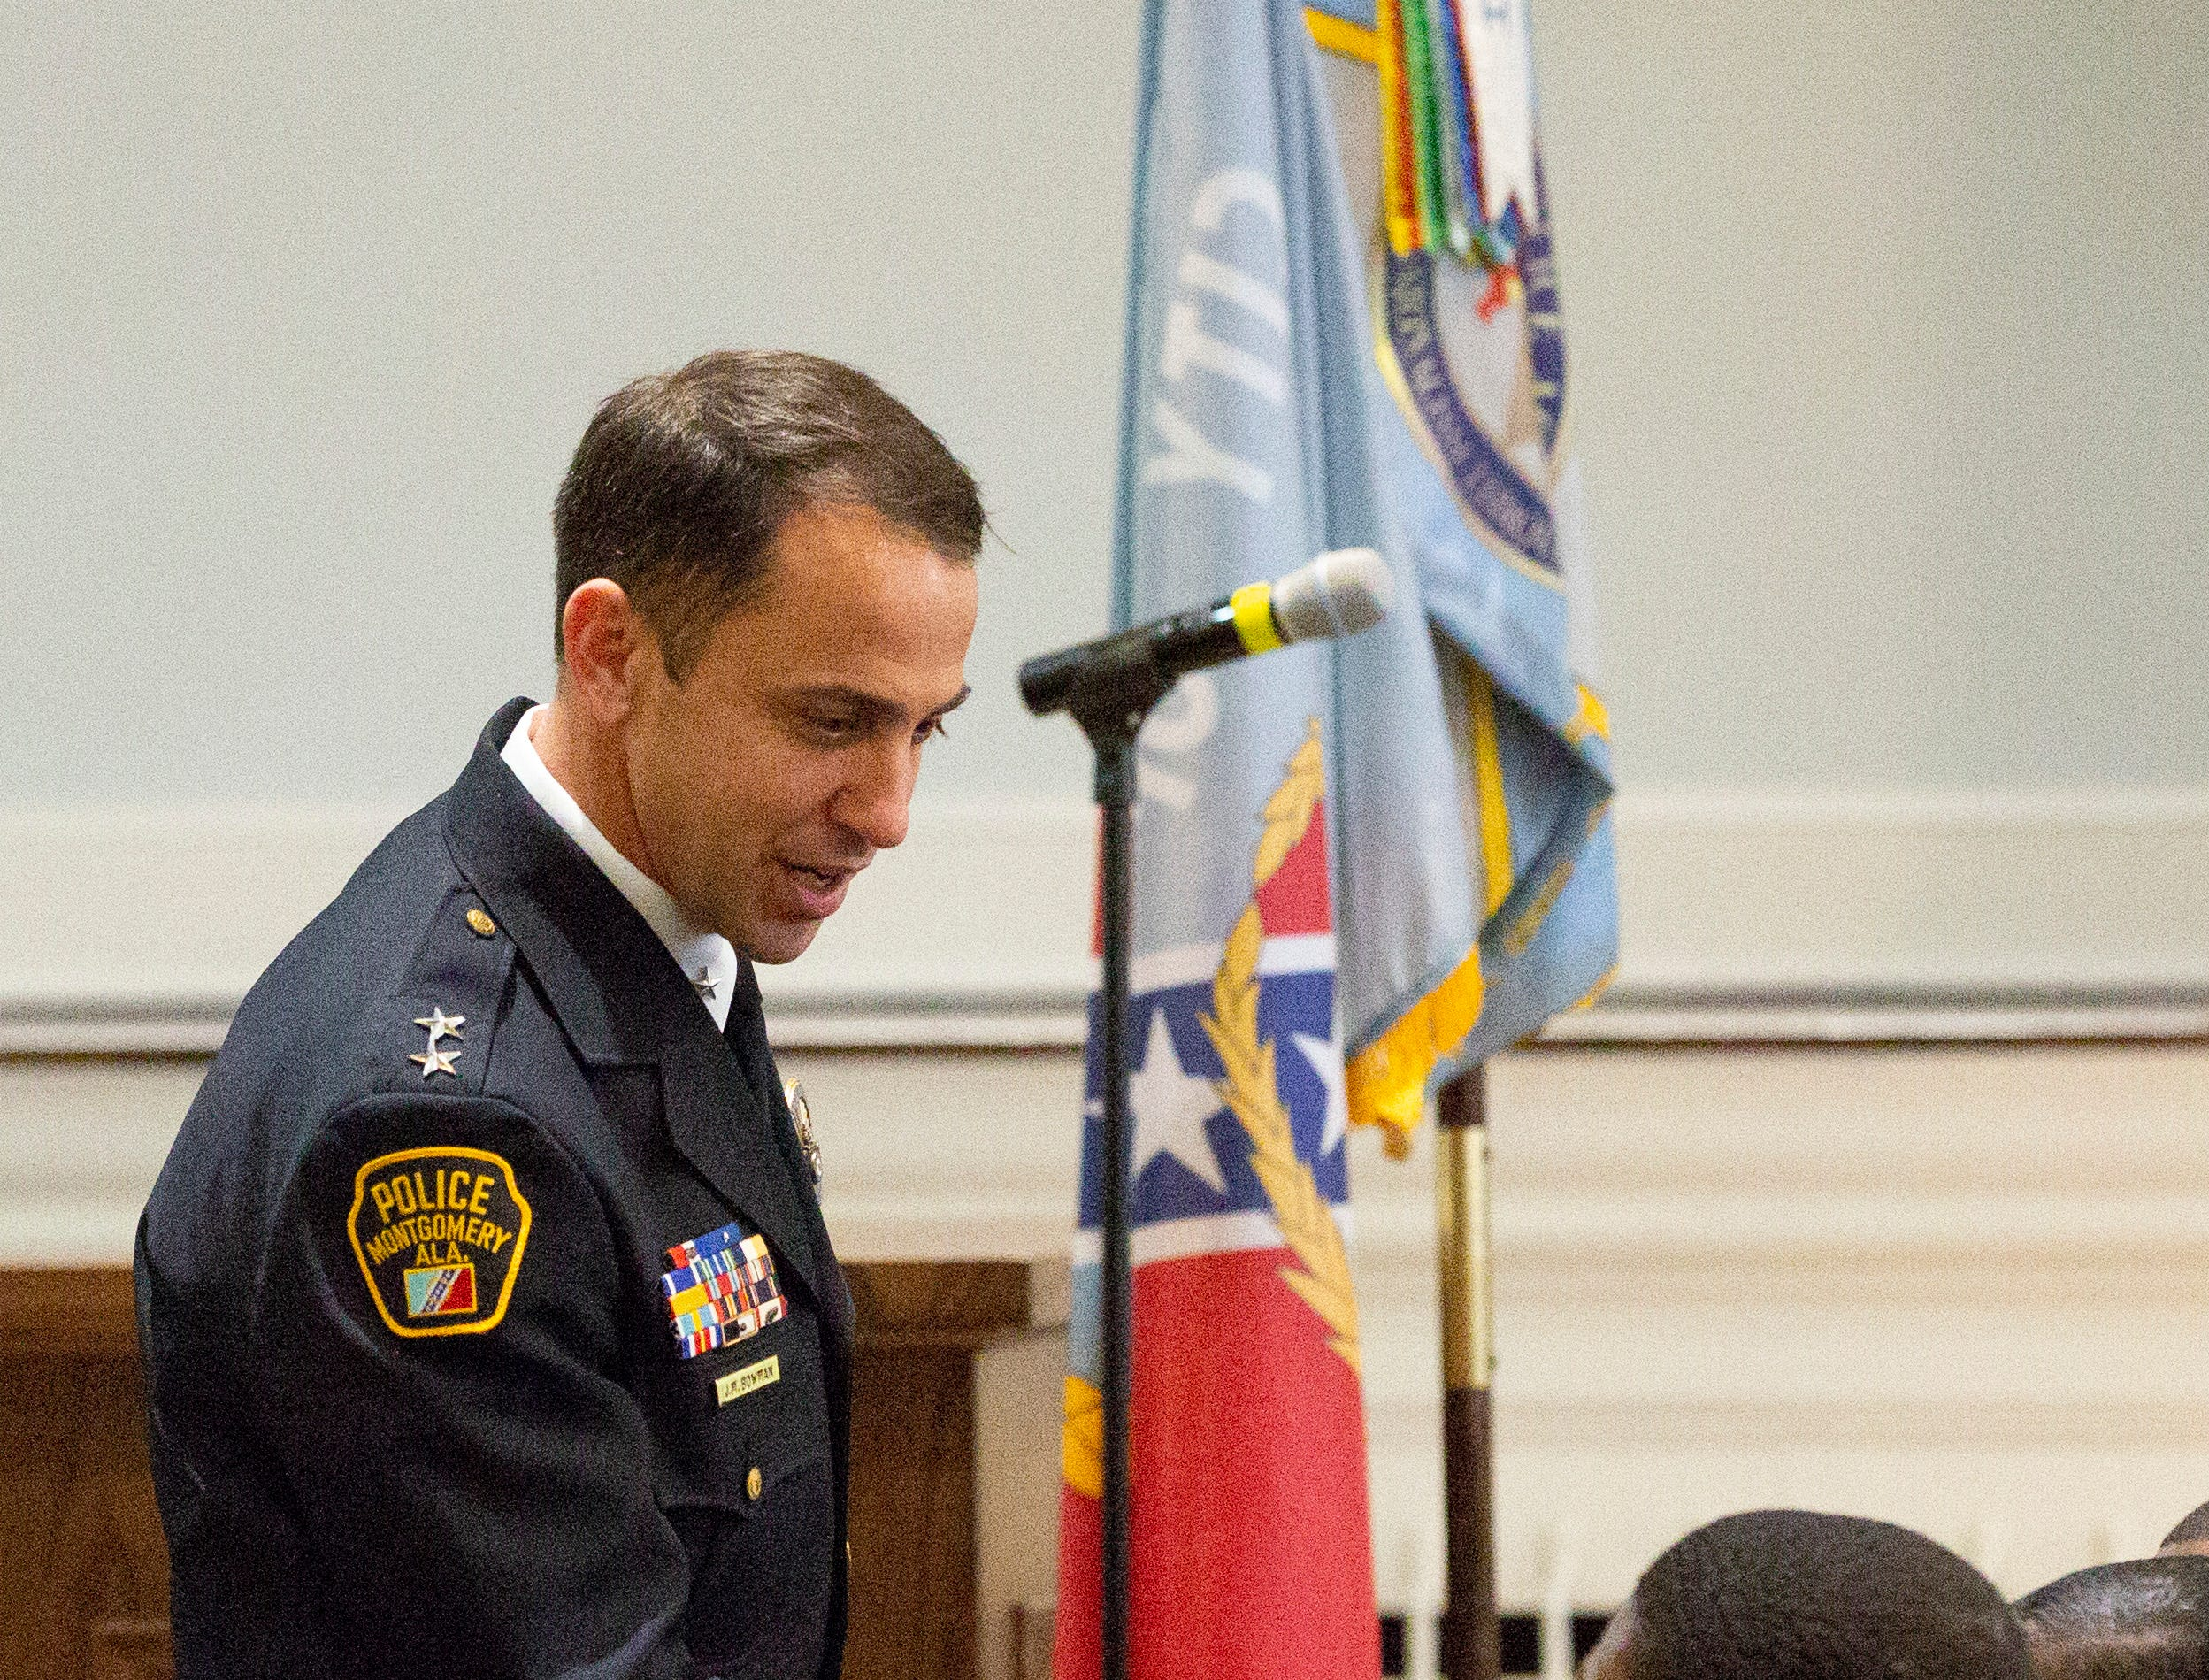 Montgomery police Chief of Staff John Bowman shakes hands with new recruits during a graduation ceremony.